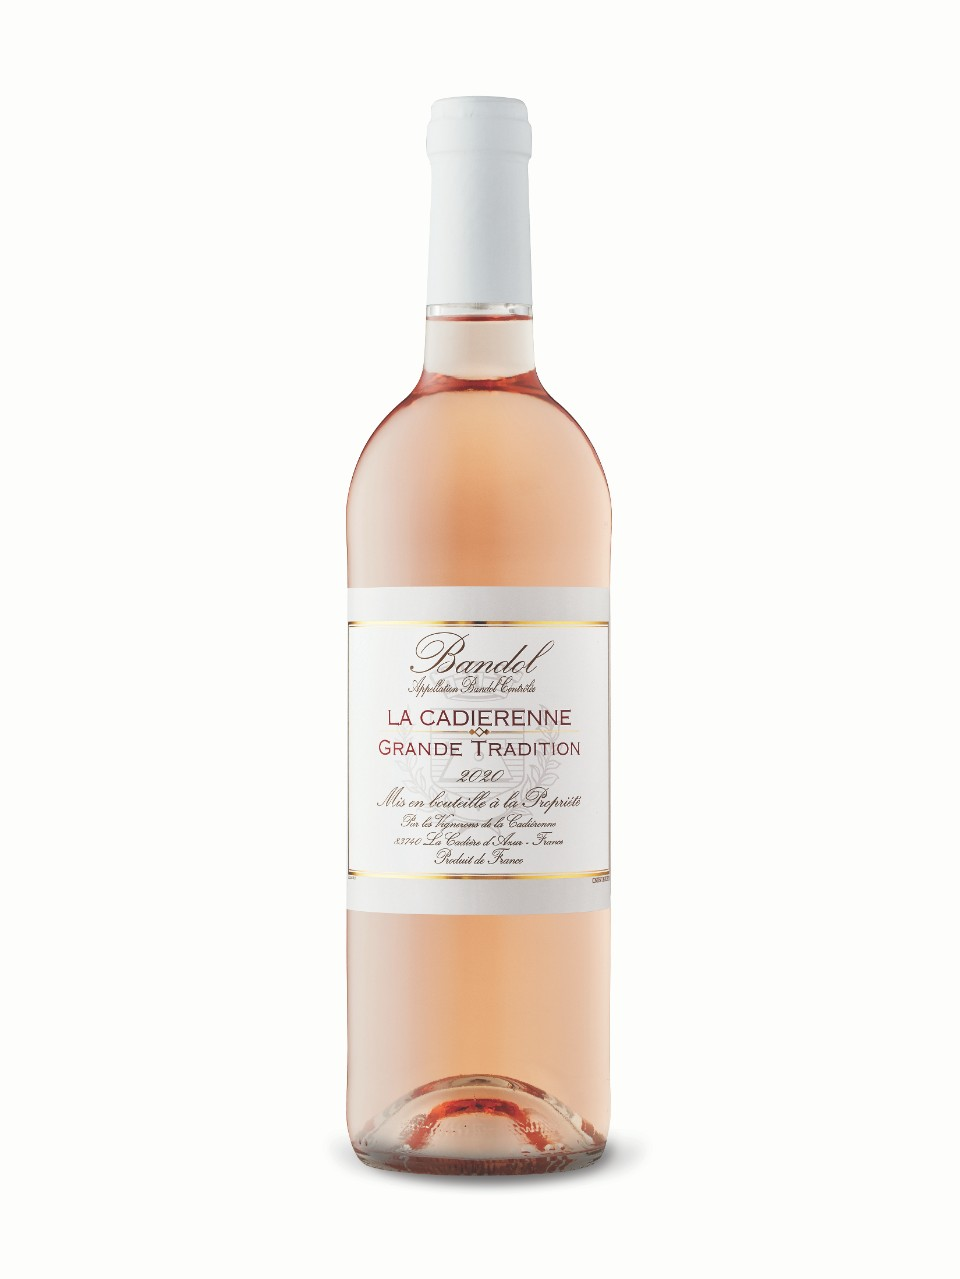 Image for La Cadiérenne Cuvée Grande Tradition Bandol Rosé 2018 from LCBO